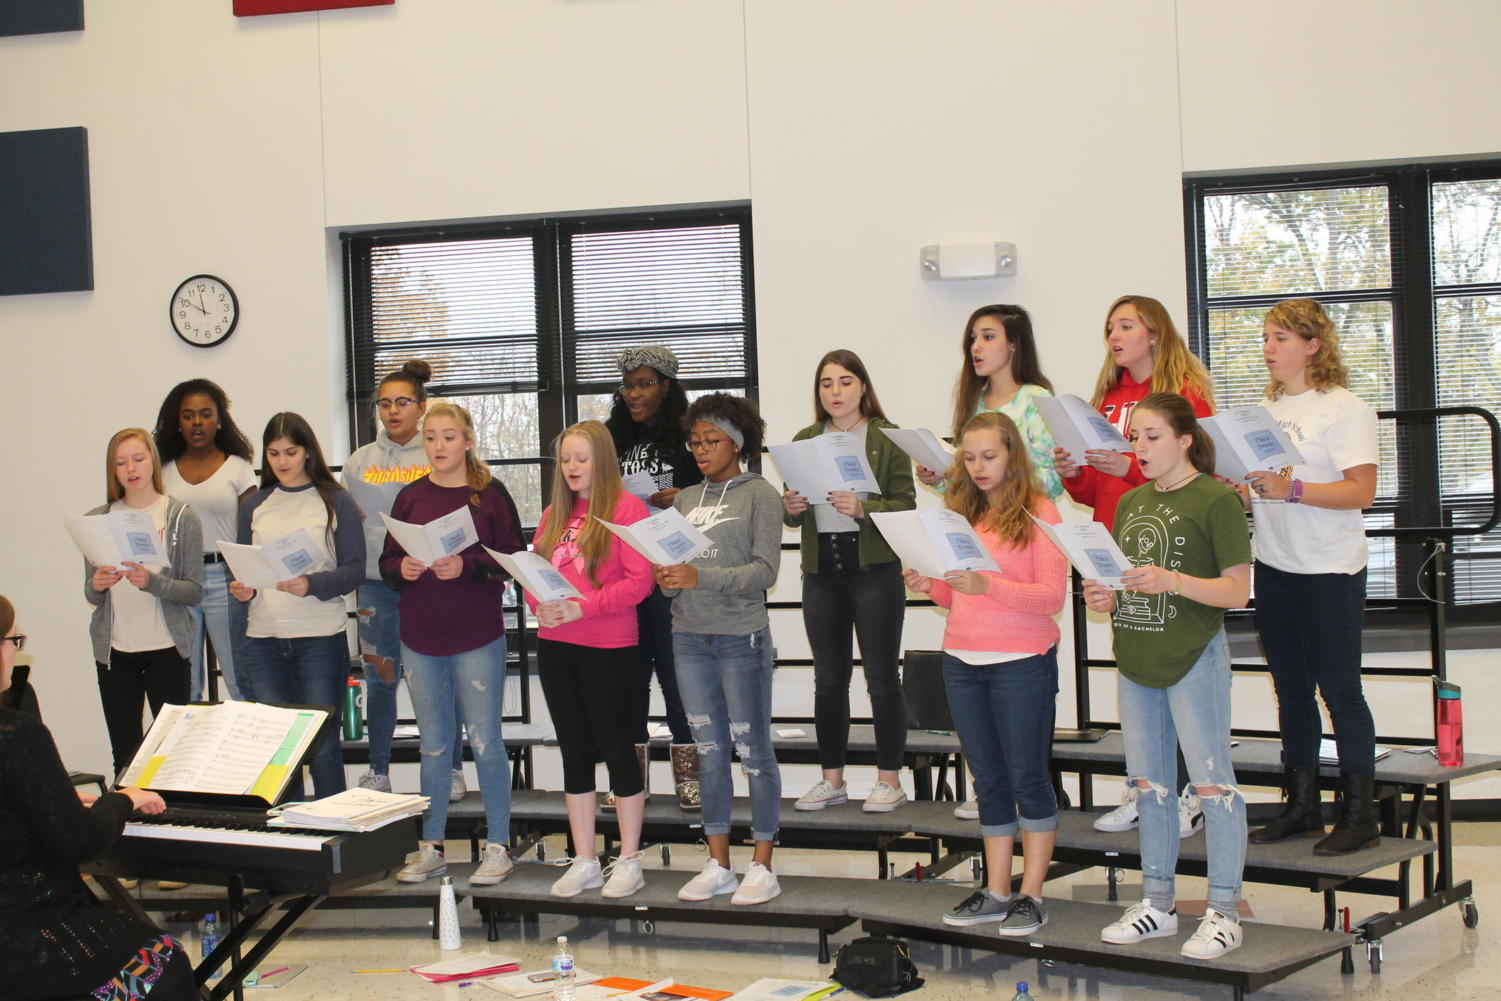 Select treble choir works on one of the invitational pieces, Gloria by Joseph Haydn.